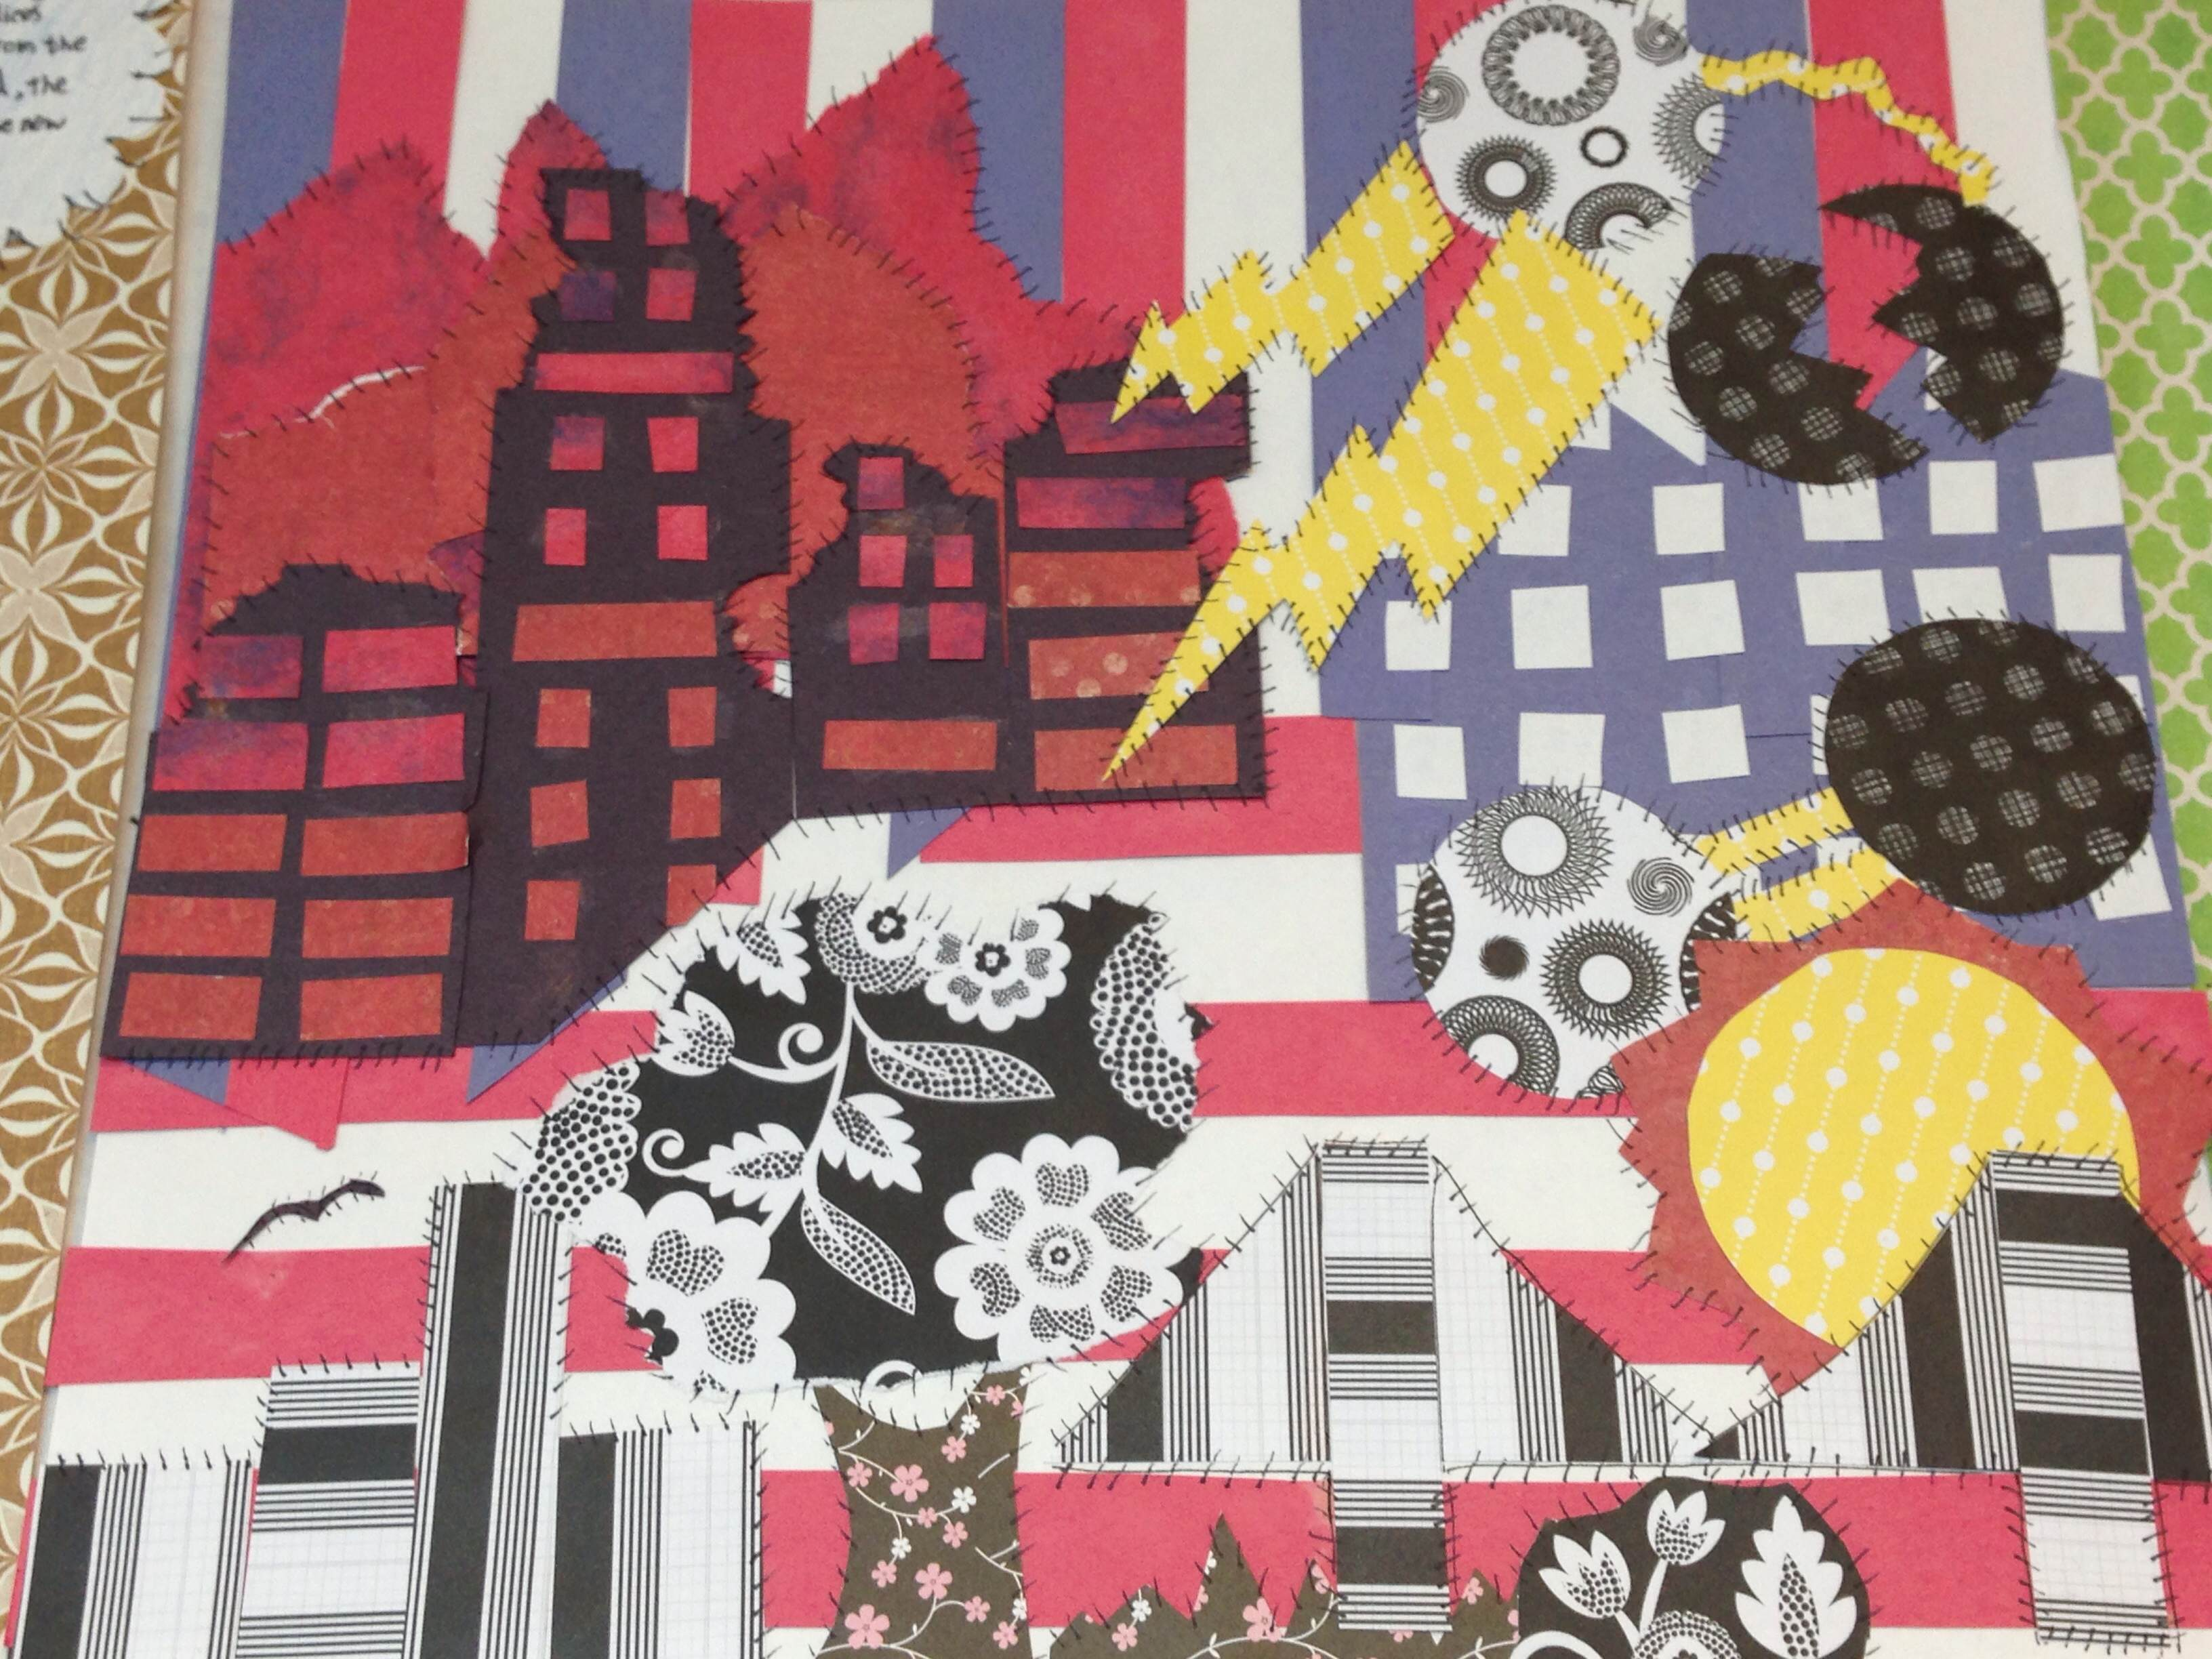 Hand-crafted quilts, or arpilleras, Karen's students made as part of a study of art as resistance in Pinochet's Chile.